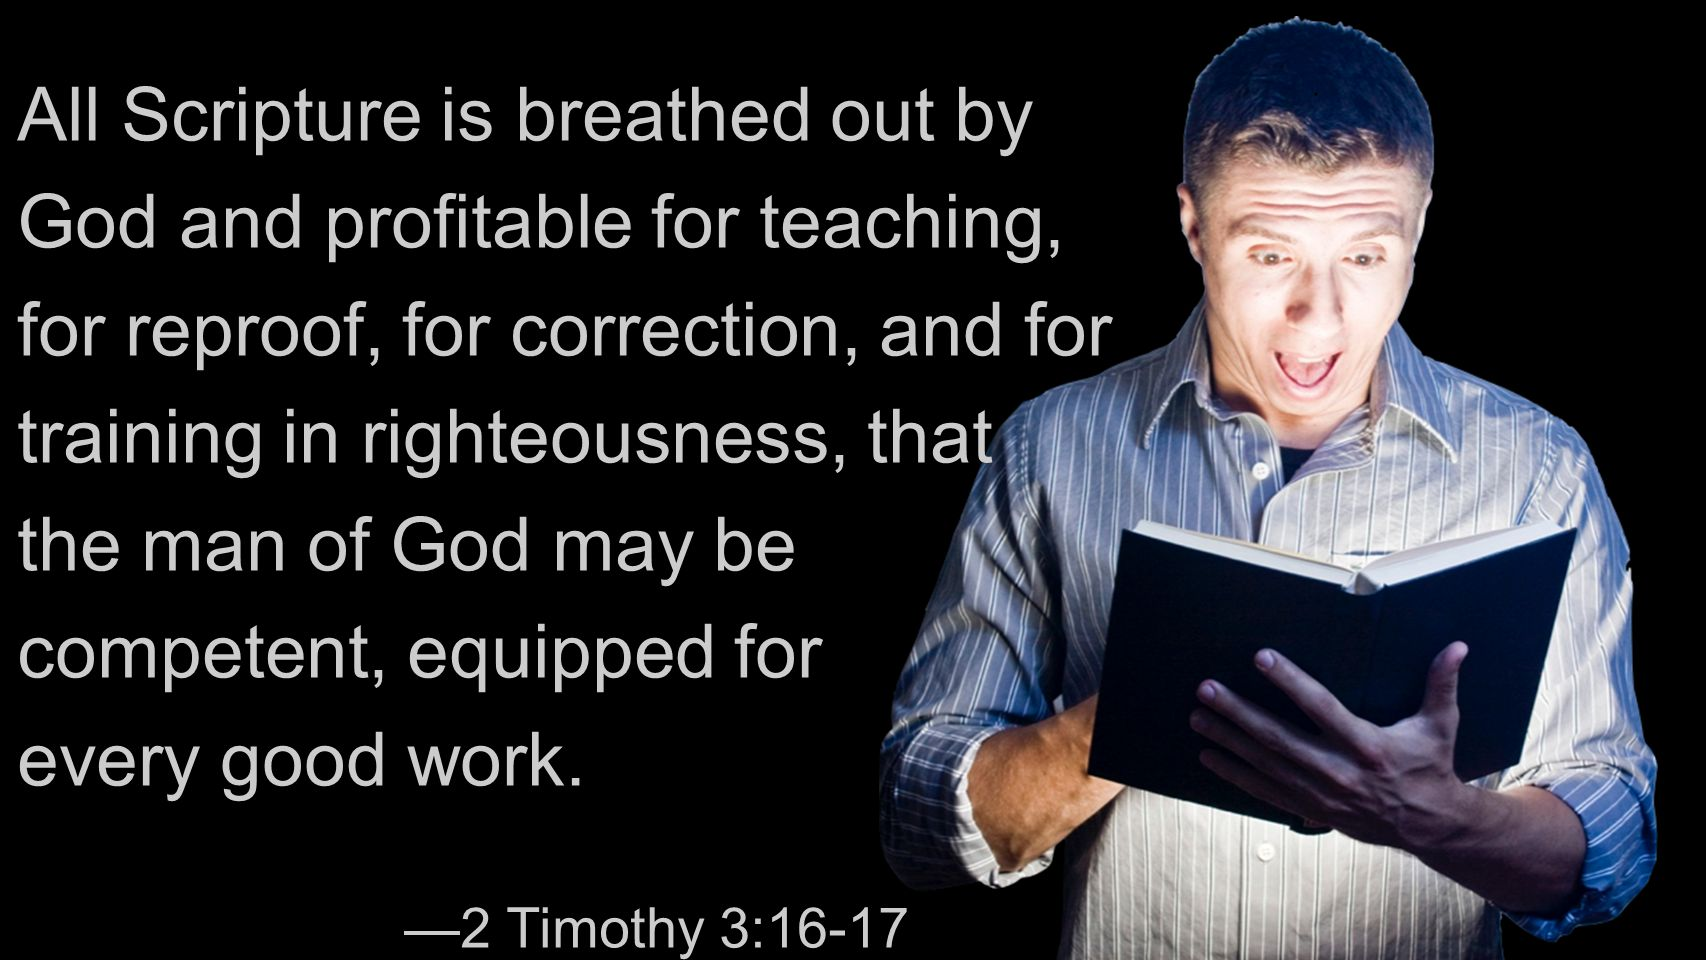 All Scripture is breathed out by God and profitable for teaching, for reproof, for correction, and for training in righteousness, that the man of God may be competent, equipped for every good work.